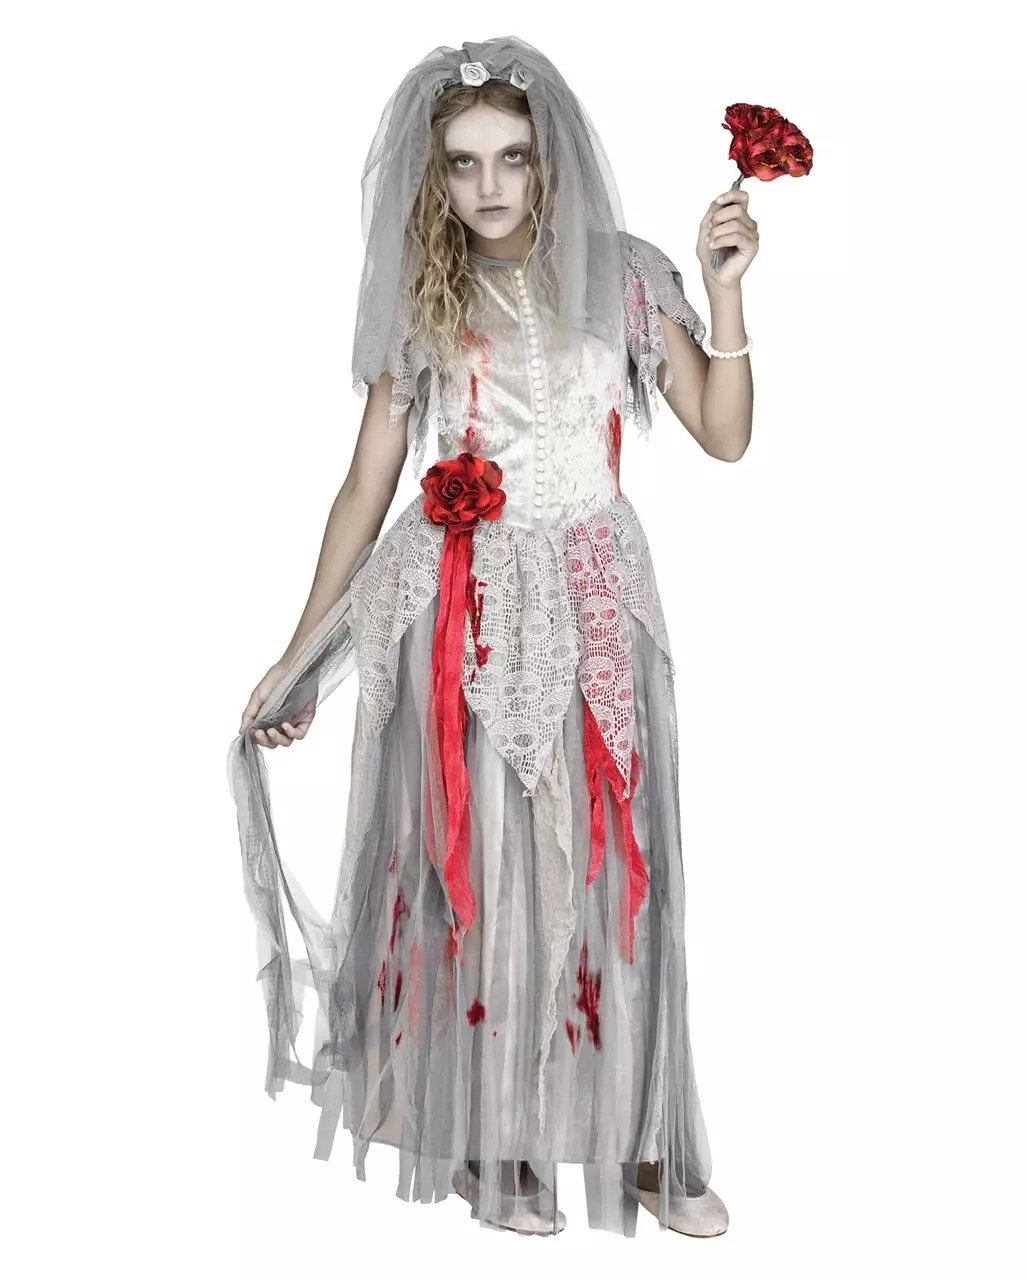 Zombie Kostüm Selber Machen Zombie Bride Children Costume Halloween Costume Horror